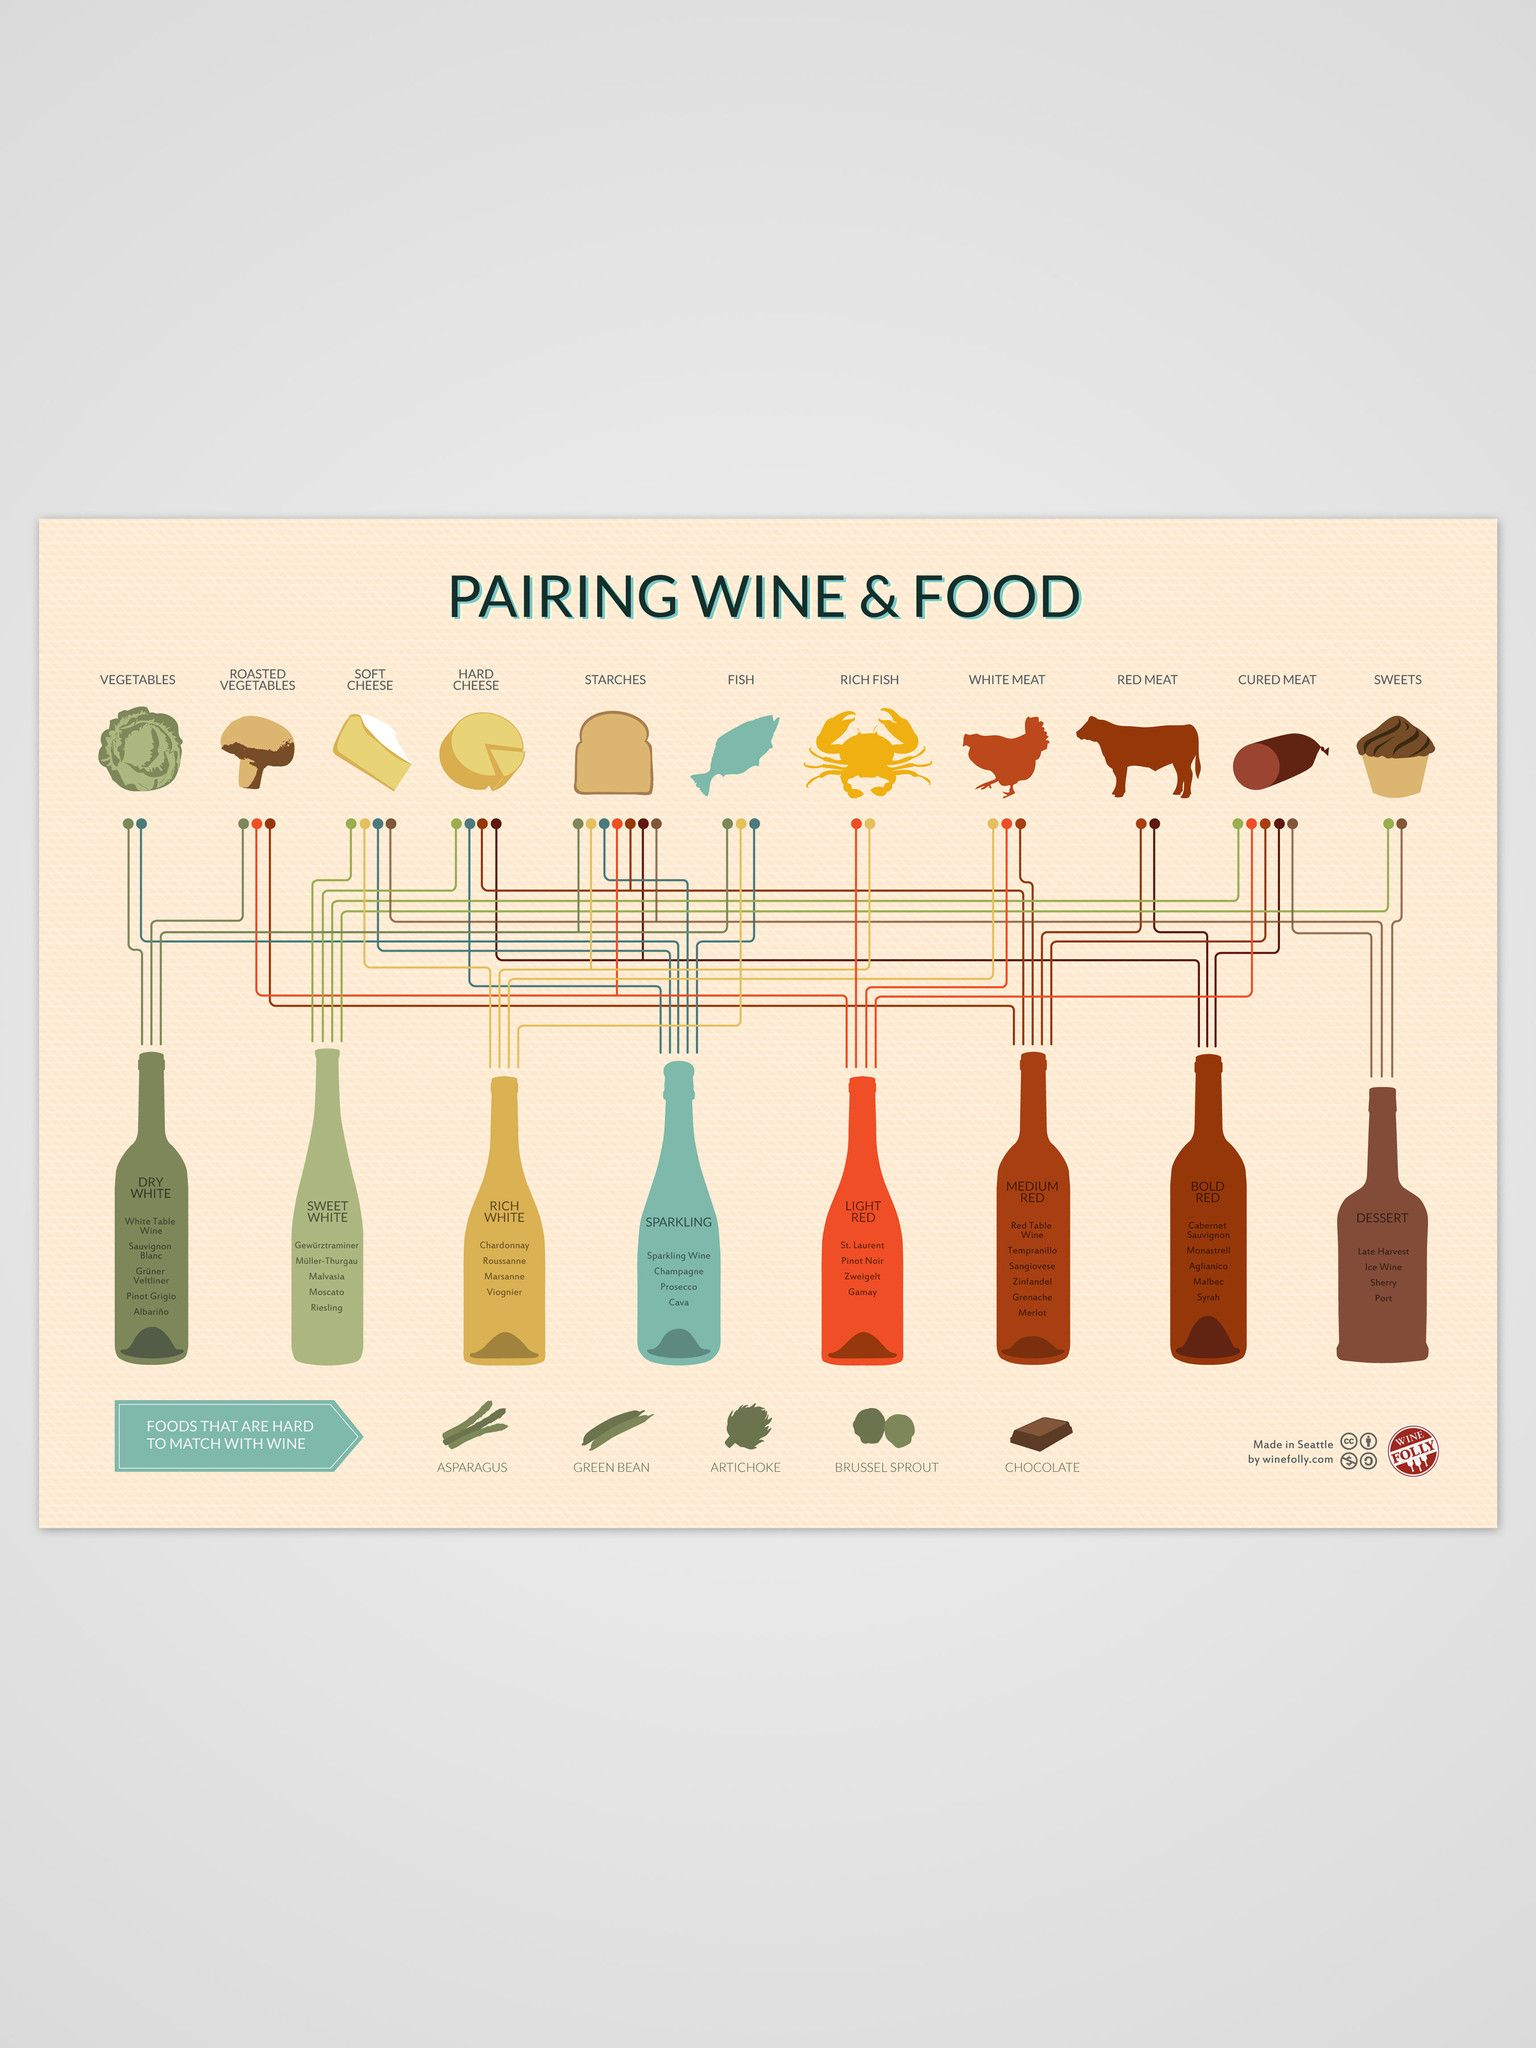 Yes please! This is both visually appealing and informative. I, personally, would keep it in the kitchen, as opposed to over the bar, since it would be good for deciding on recipes.